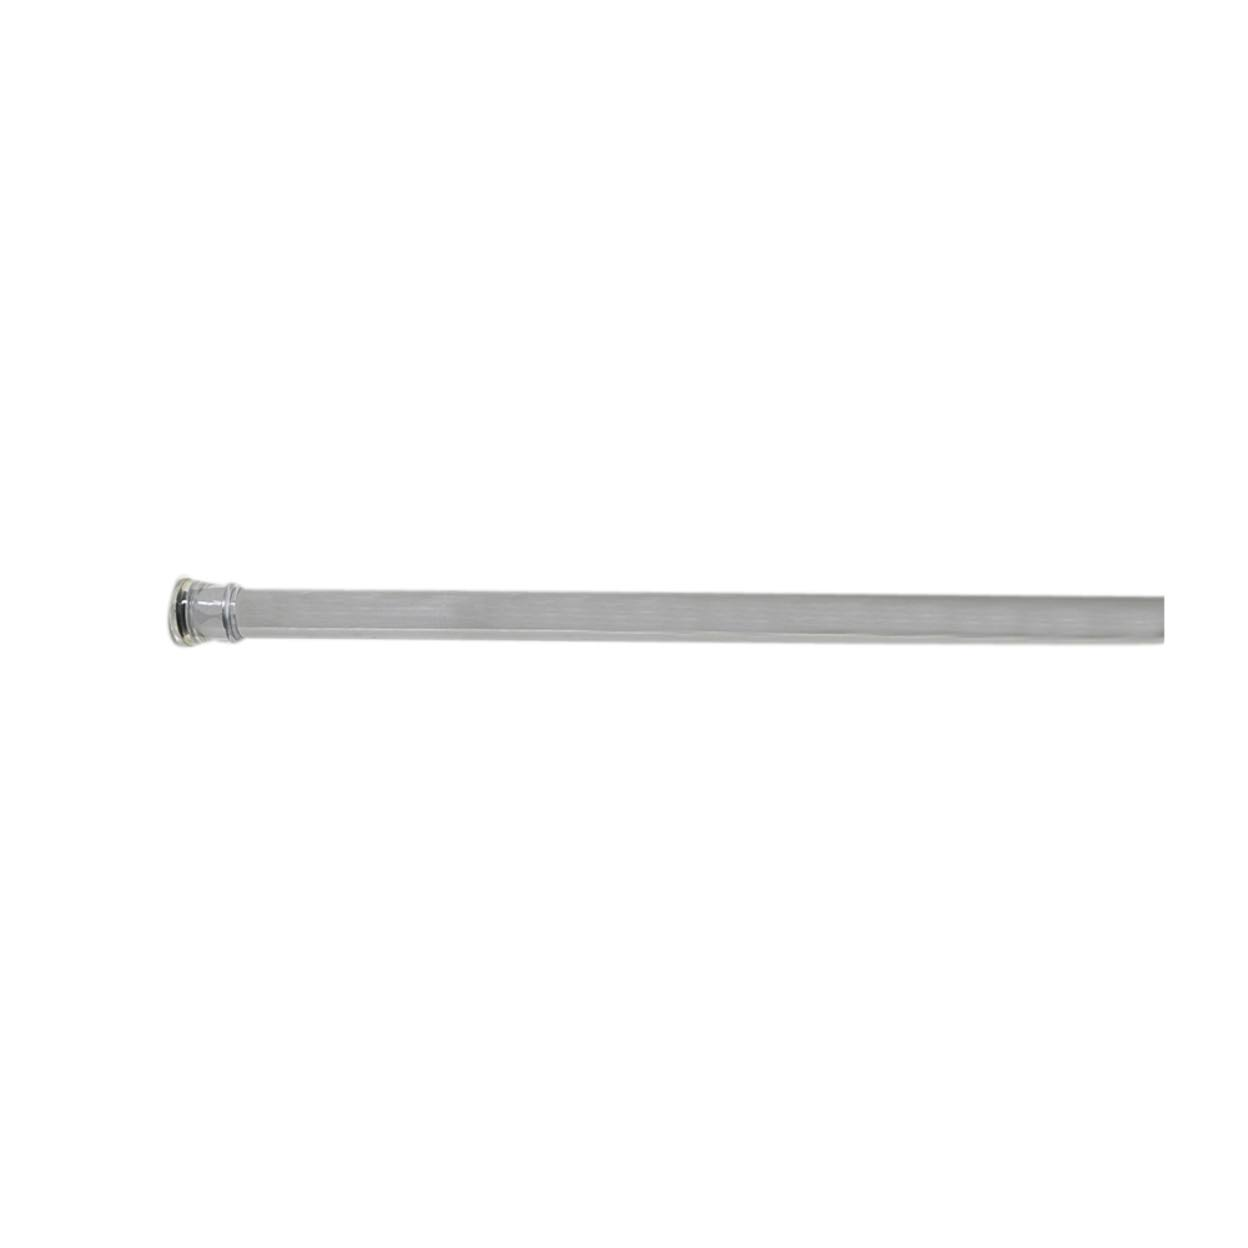 "Bath and Shower Curtain Adjustable Tension Rod - 41"" - 72"" Long, Chrome"